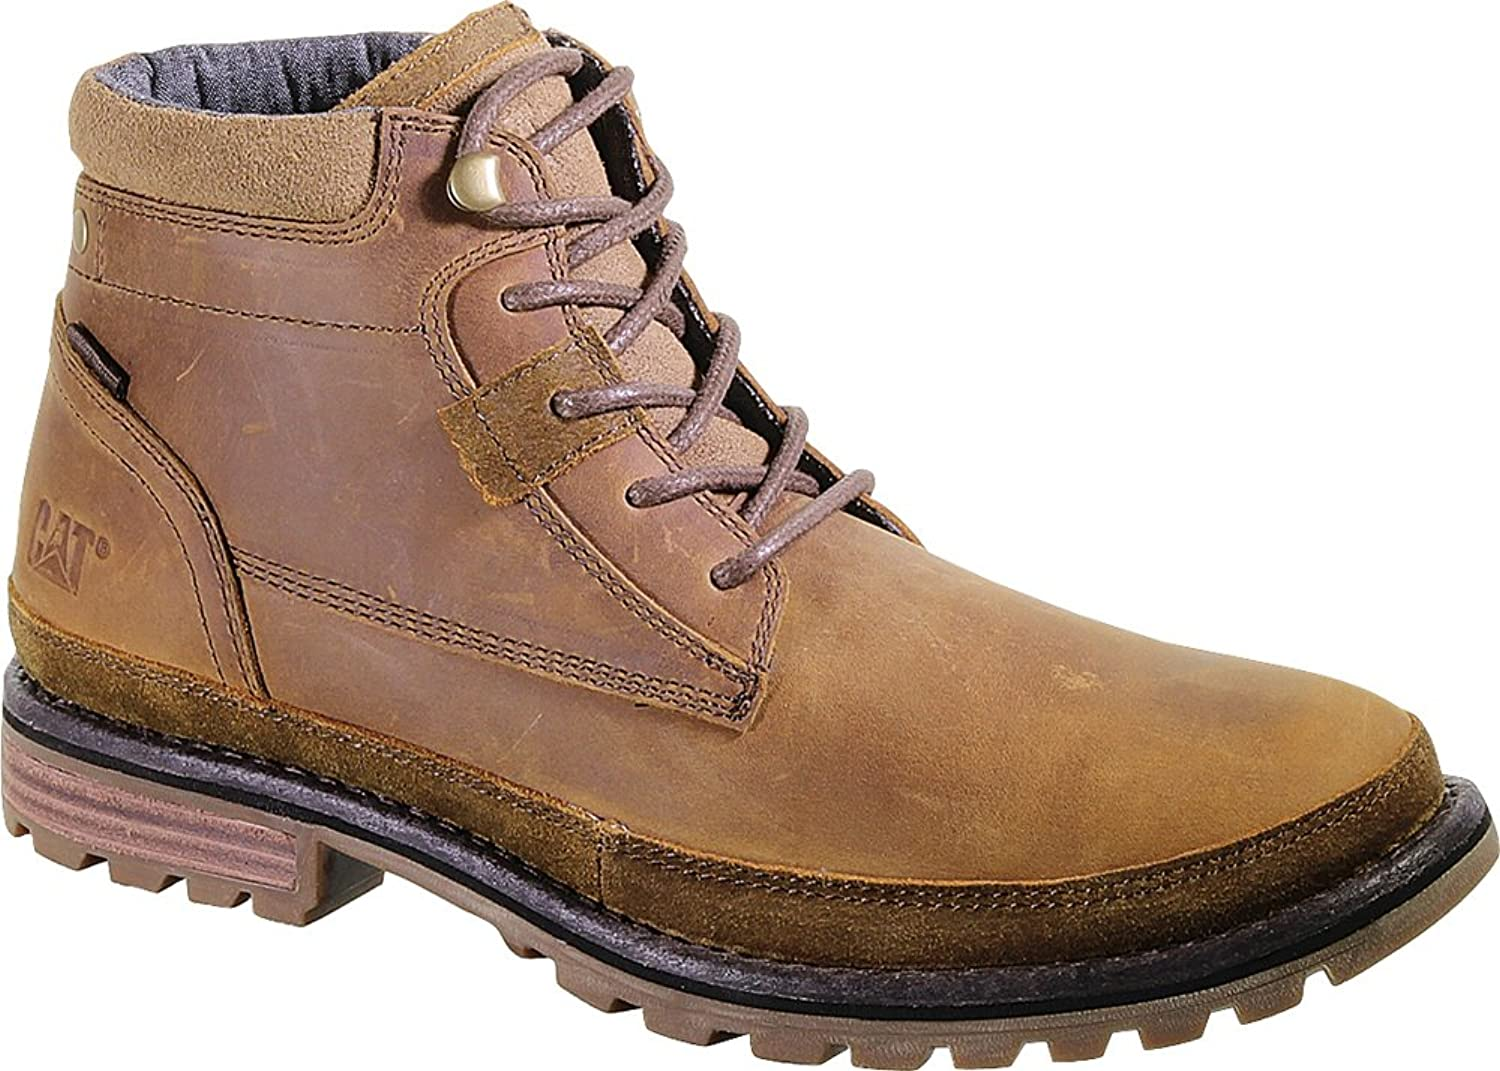 oatman guys The oatman men's boot - dark brown/mocha - p716414 the oatman is a classic boot that will go with anything made for both comfort ands style, you simply can not go.